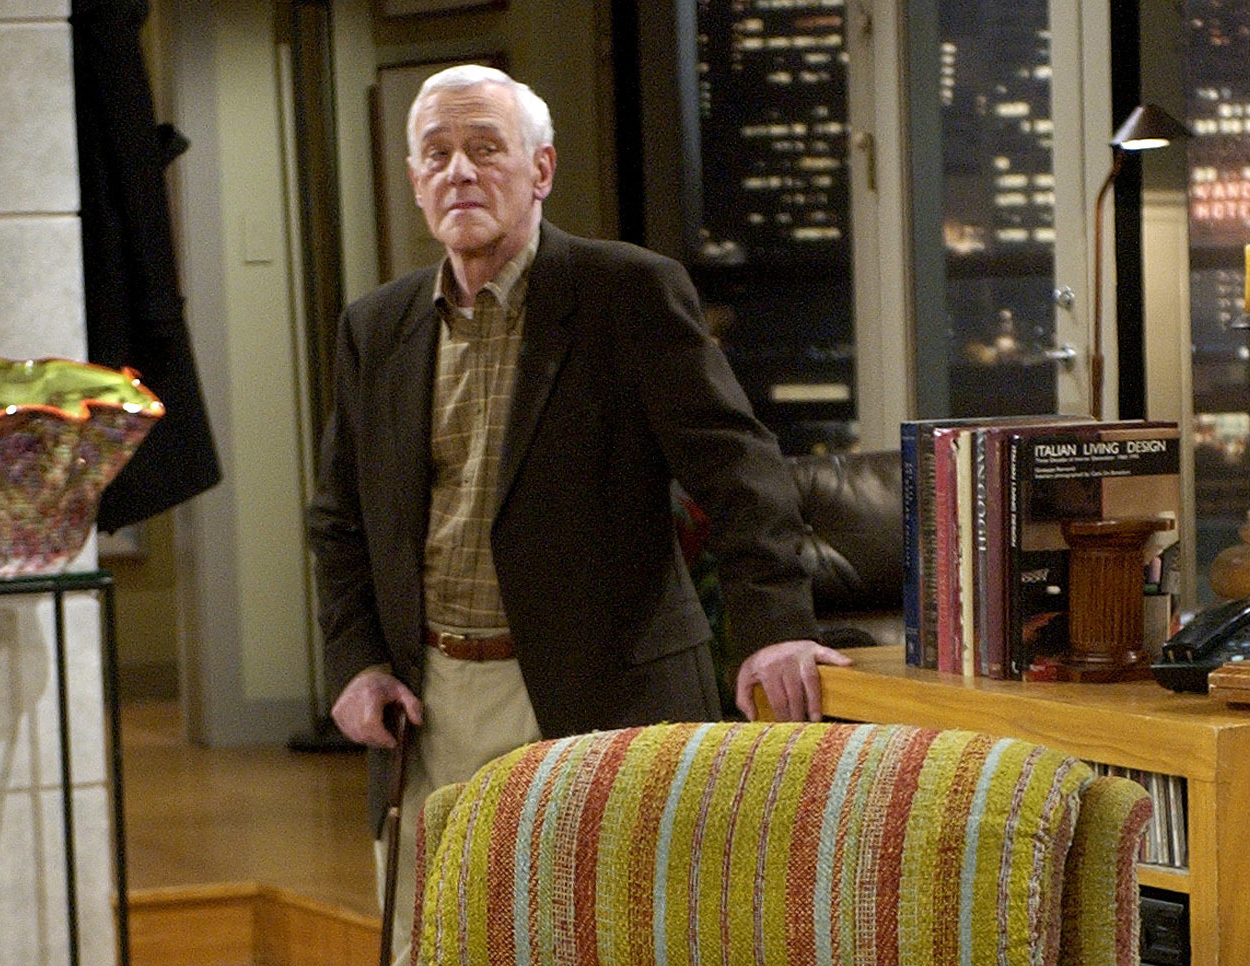 John Mahoney, 'Frasier' Dad, Dies at 77